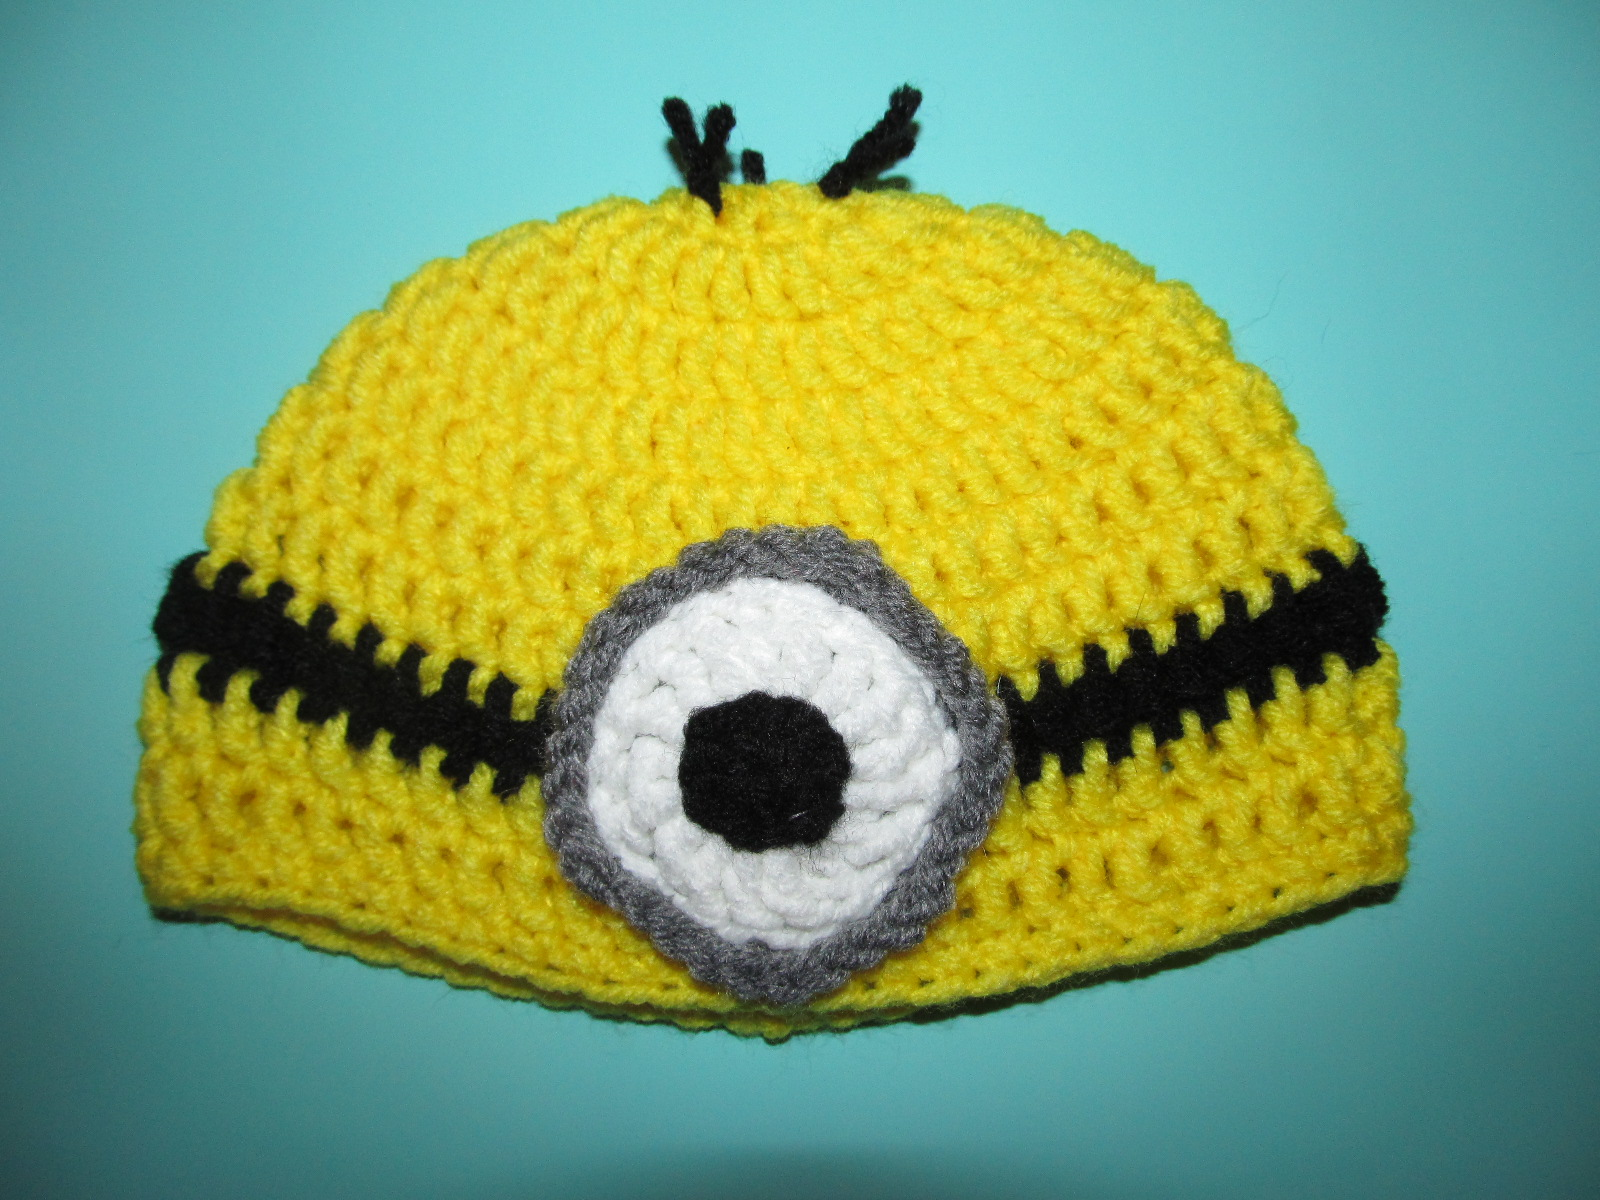 Crochet Me Free Patterns : Simply Crochet and Other Crafts: Despicable Me Minions Crochet Hat